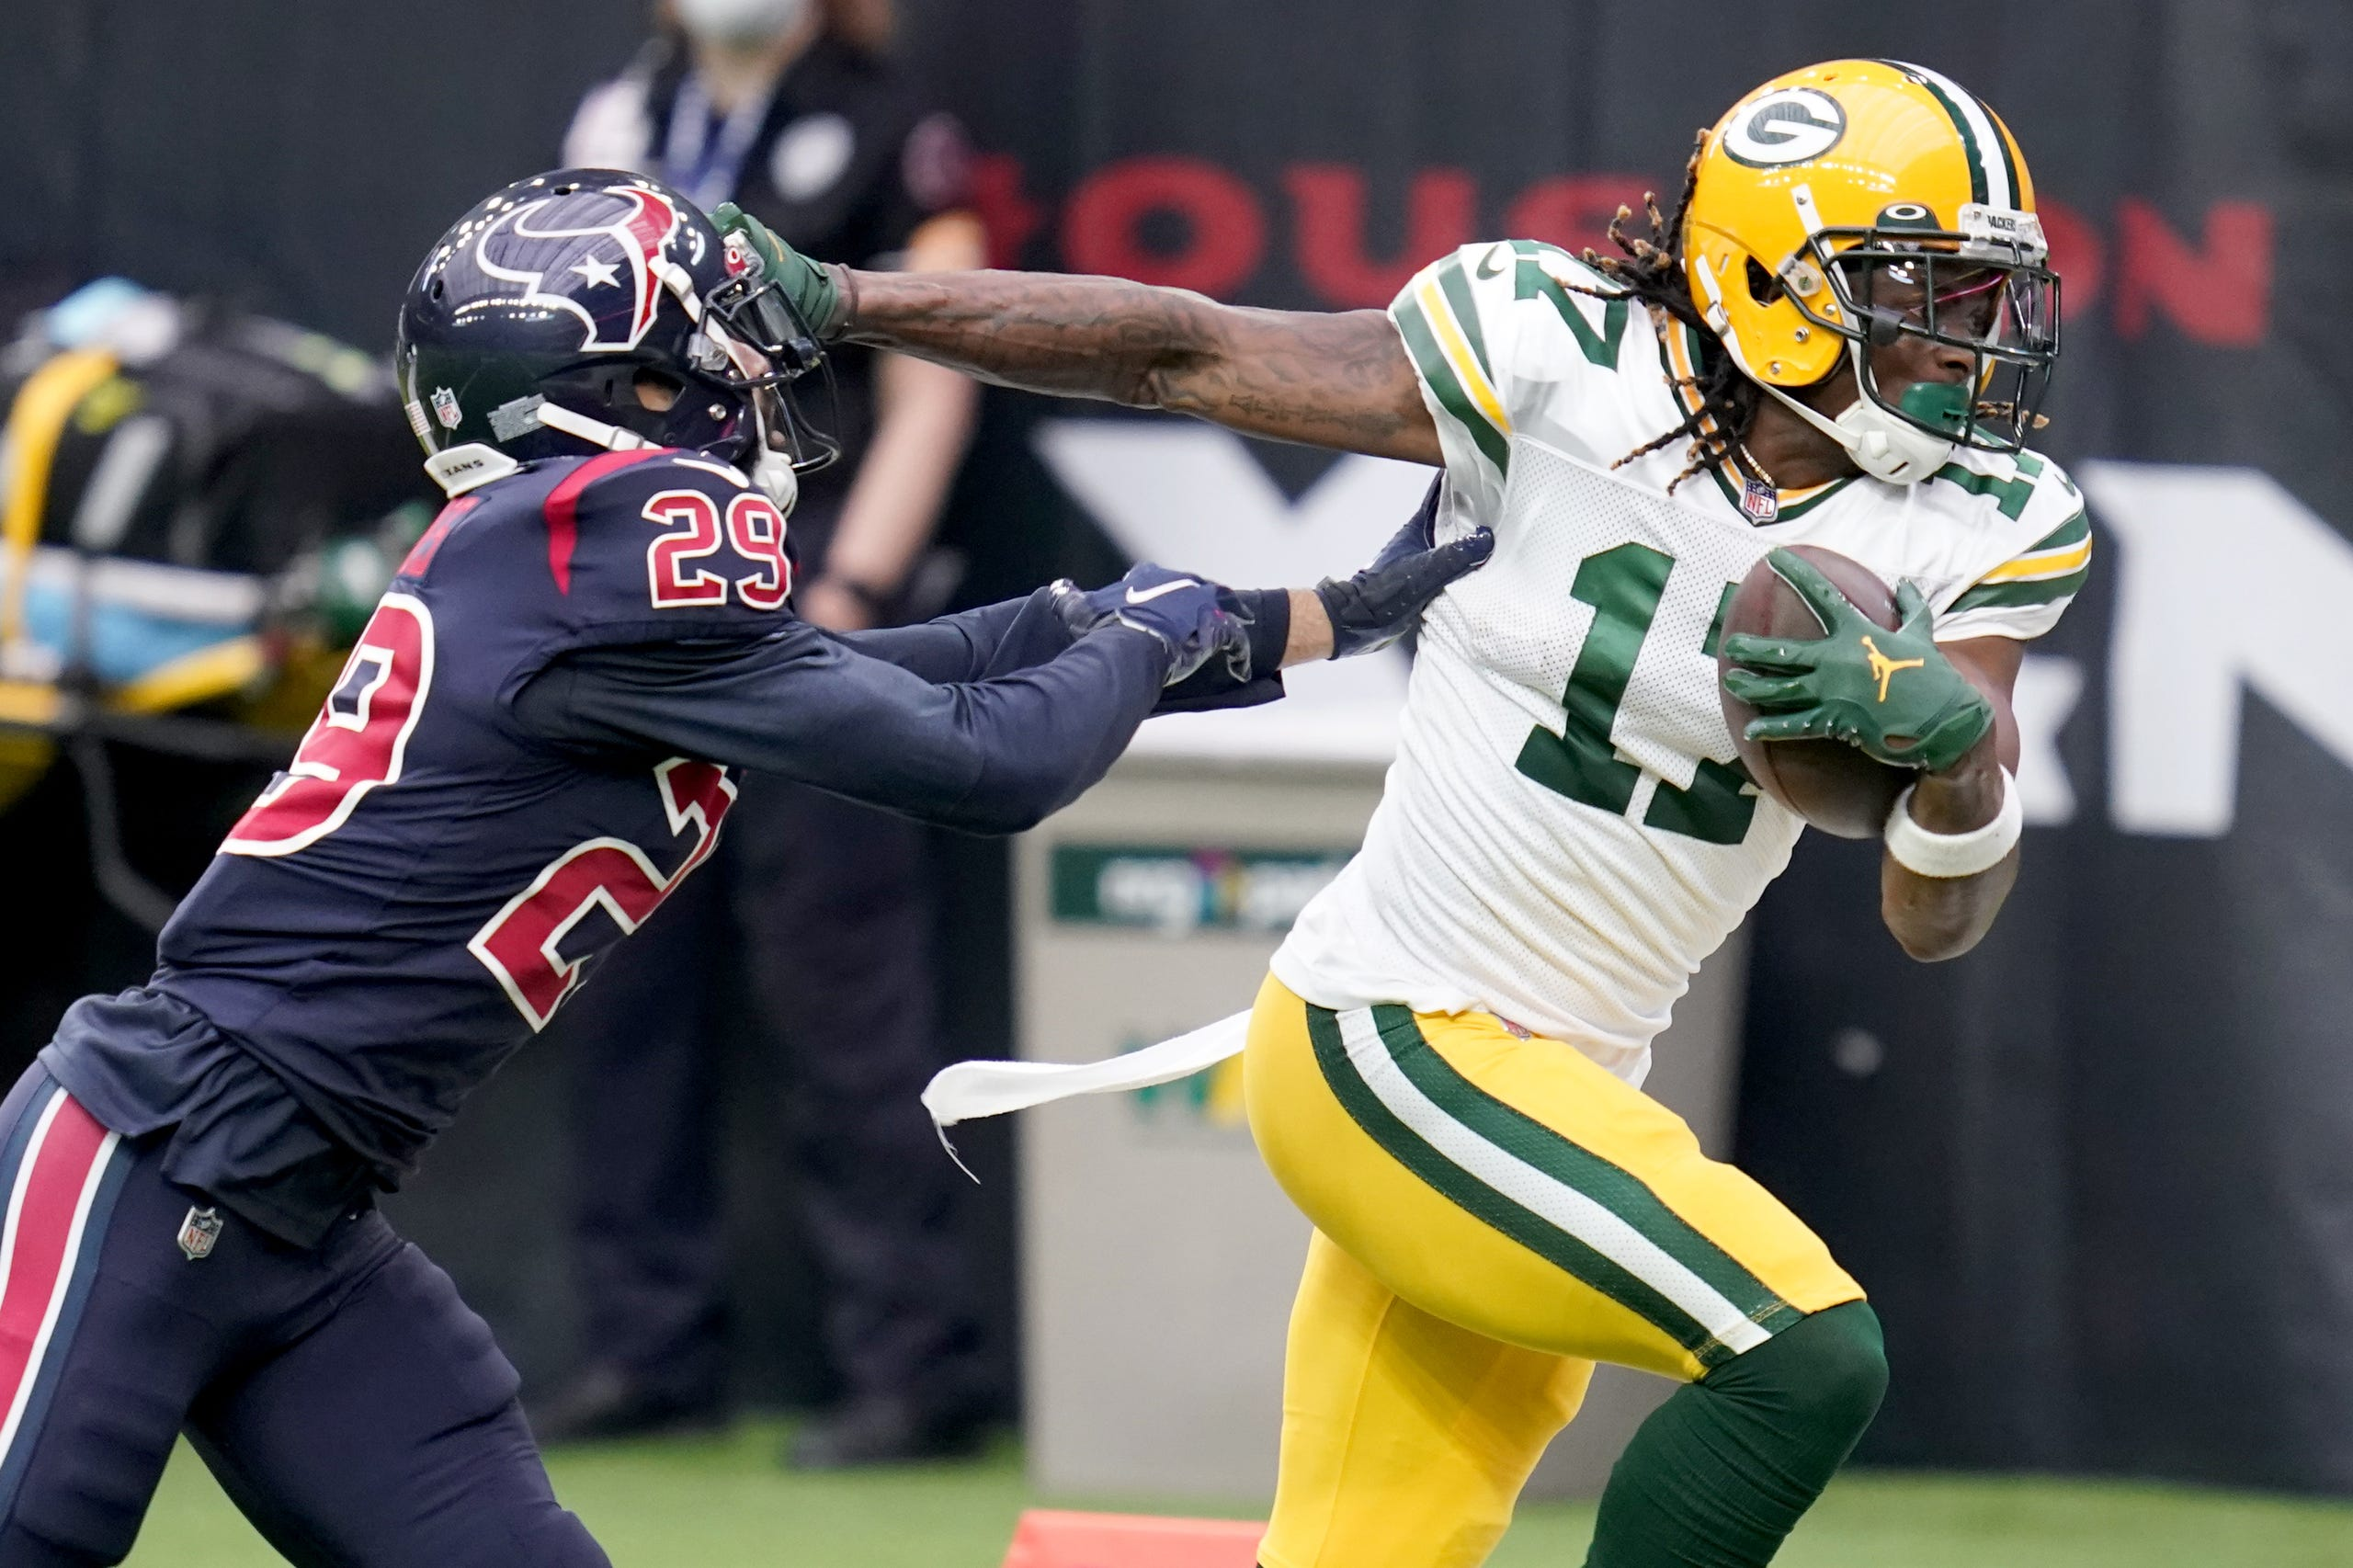 Green Bay Packers Vs Houston Texans Week 7 Game Photos